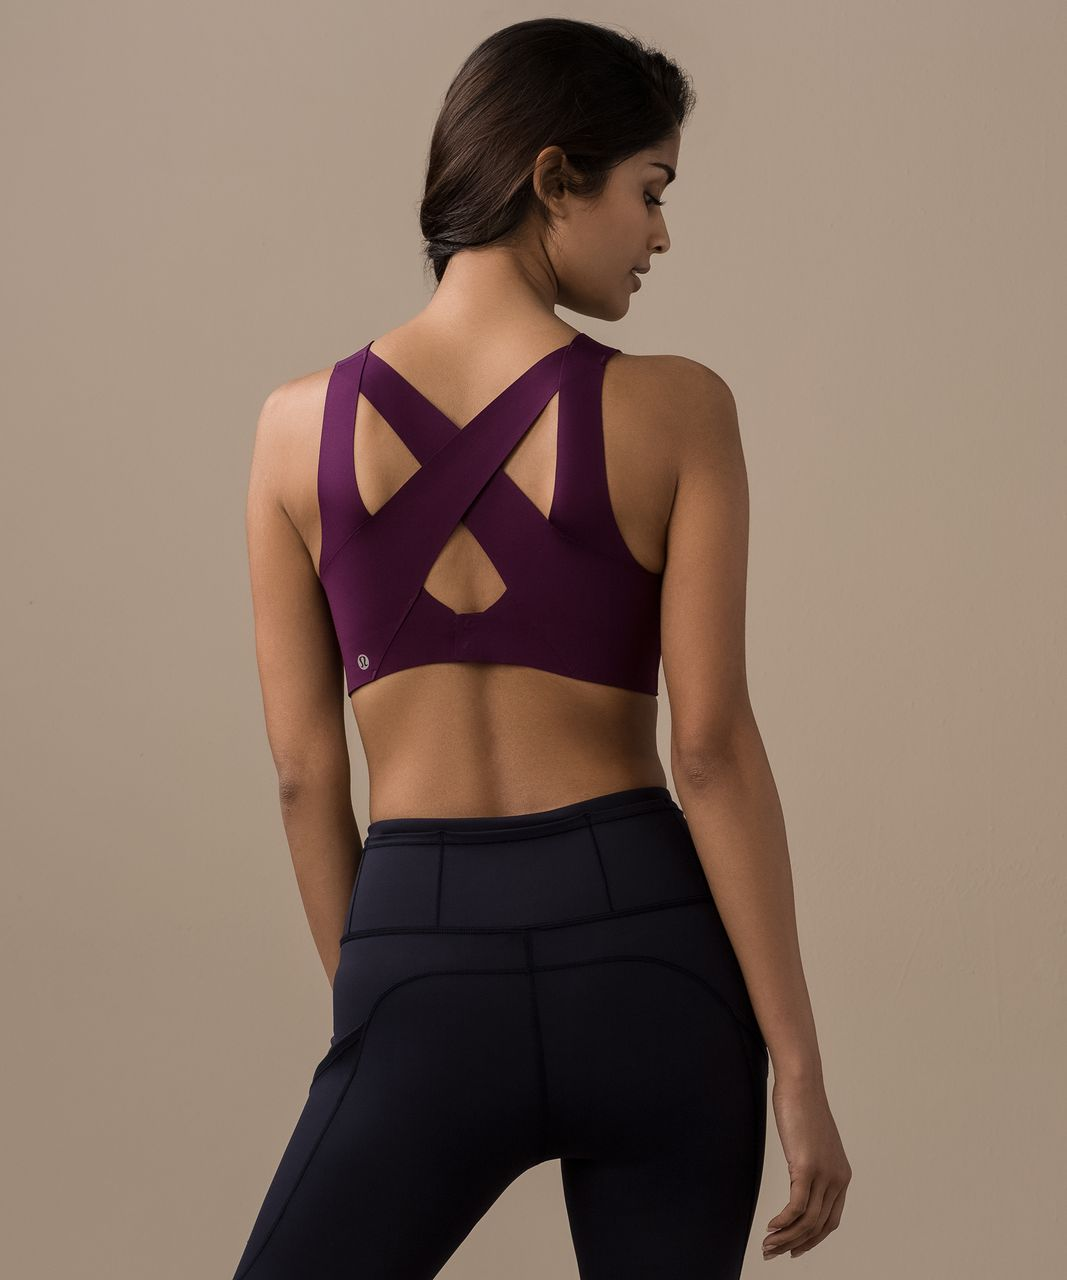 f066df6ff4a74 Lululemon Enlite Bra - Marvel